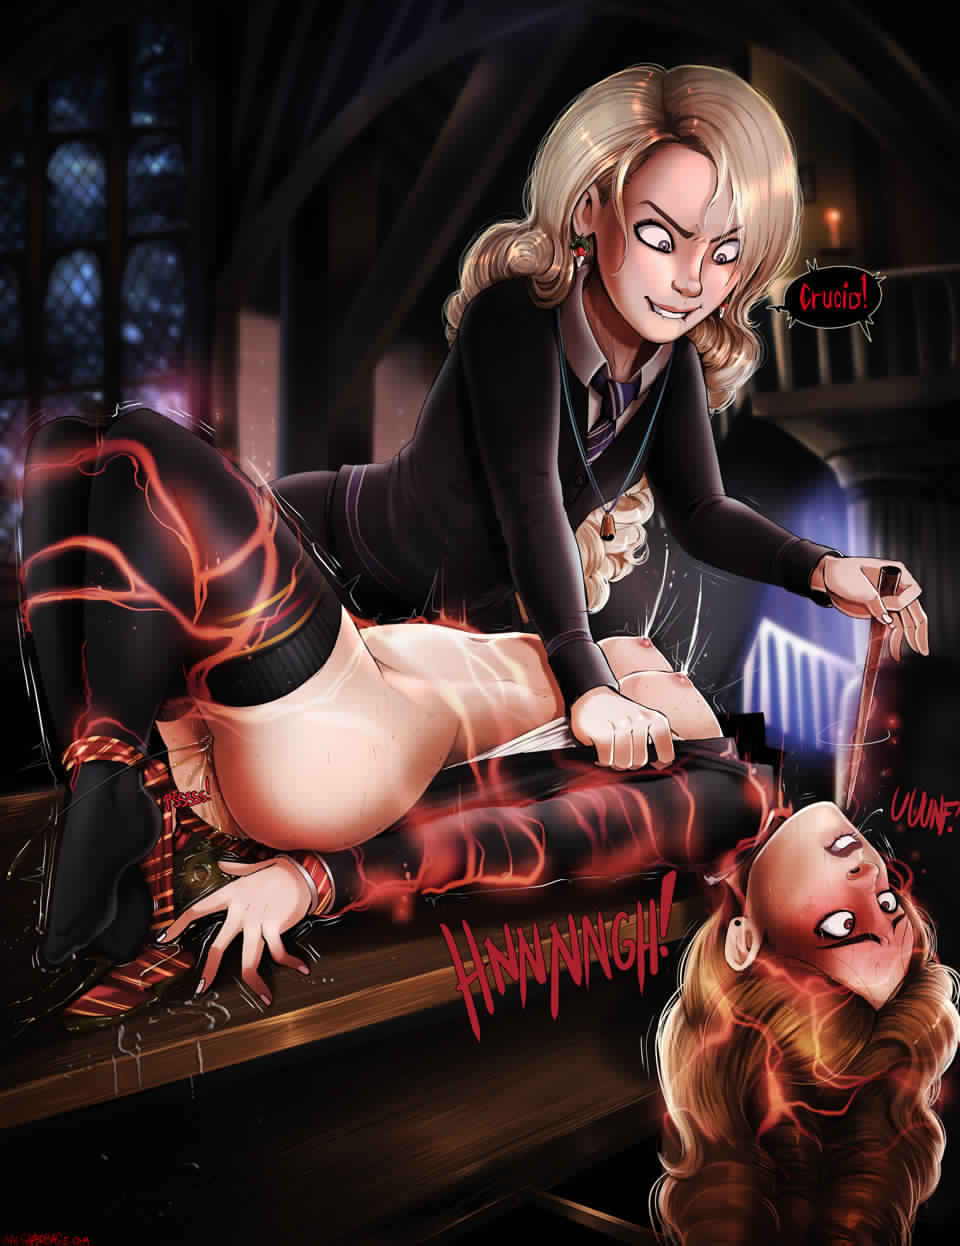 Manga harry potter porn henti gratis porn streaming